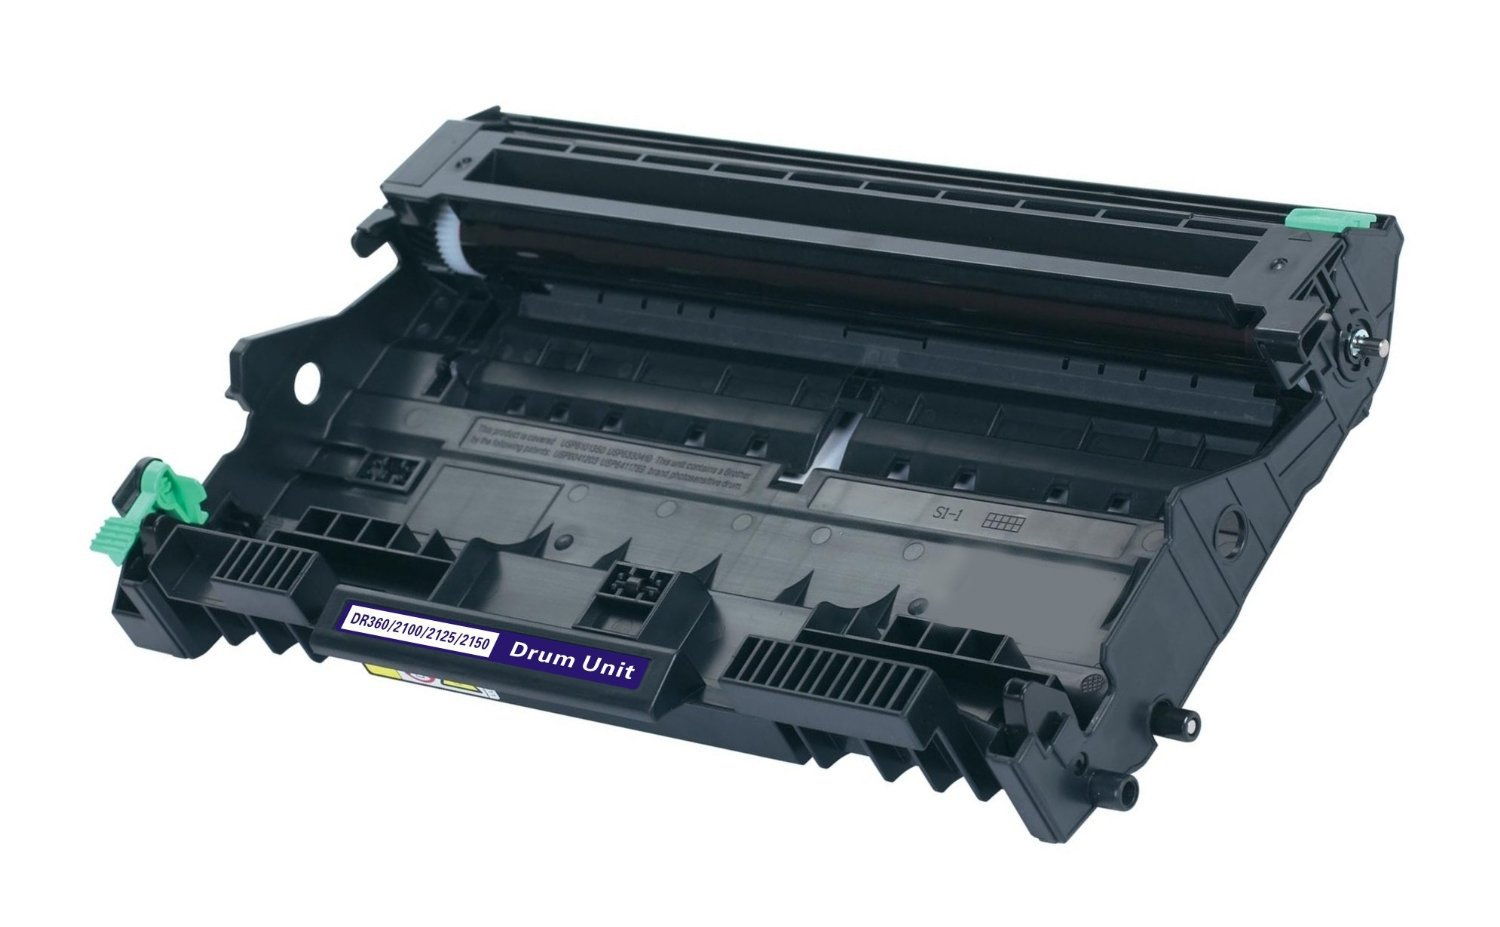 PerfectPrint Compatibile Drum Unit Sostituire Per Brother DCP-7030 DCP-7040 HL-2140 HL-2150 HL-2150N HL-2170 HL-2170W MFC-7320 MFC-7440N MFC-7840W DR2100 (Nero)